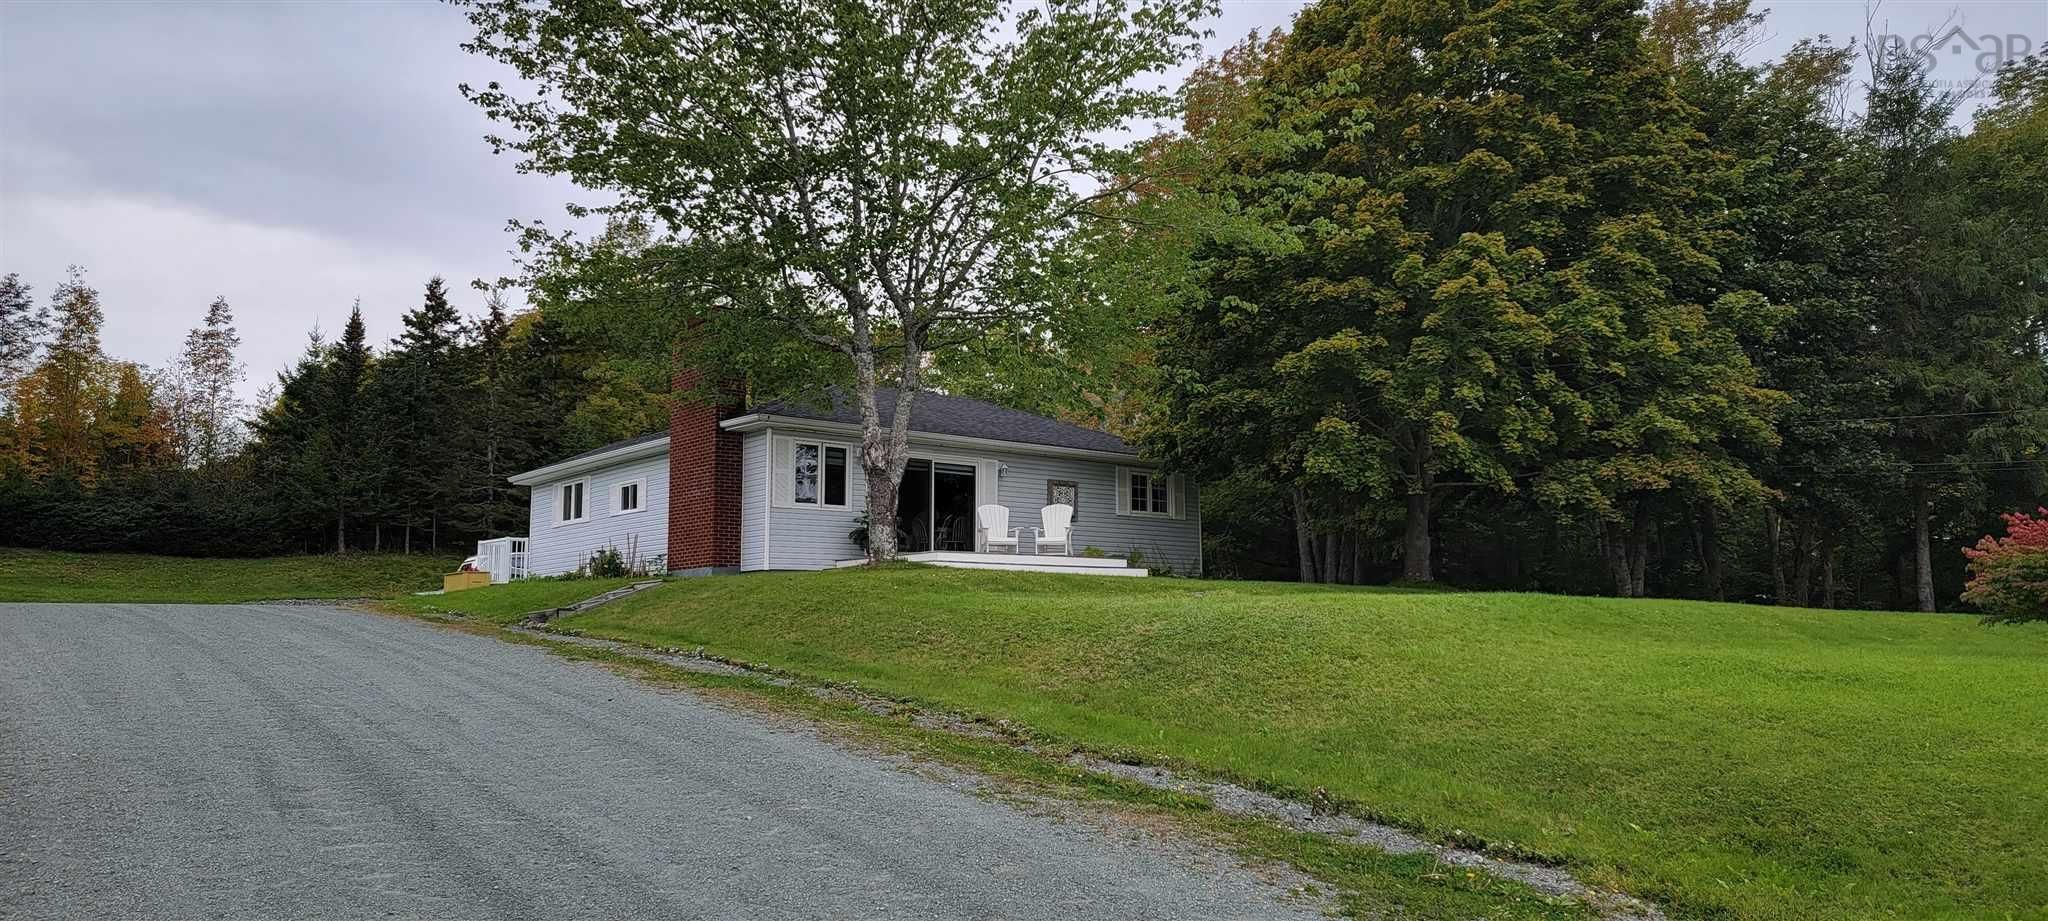 Main Photo: 1593 Hwy 245 in North Grant: 302-Antigonish County Residential for sale (Highland Region)  : MLS®# 202125064